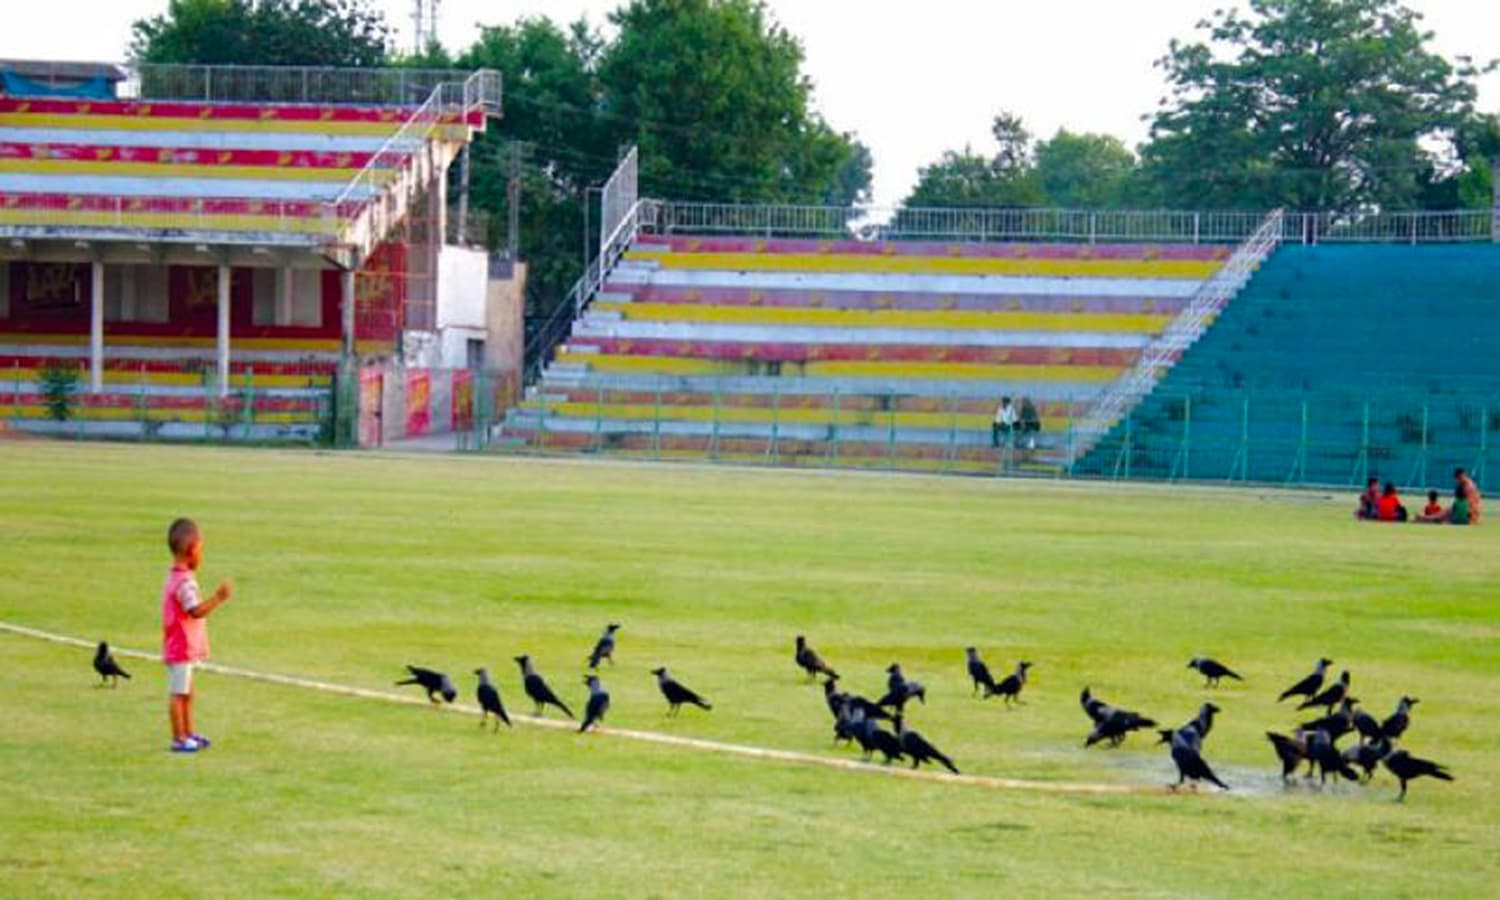 A quiet day at Jinnah Stadium. (Pic: The Nation)